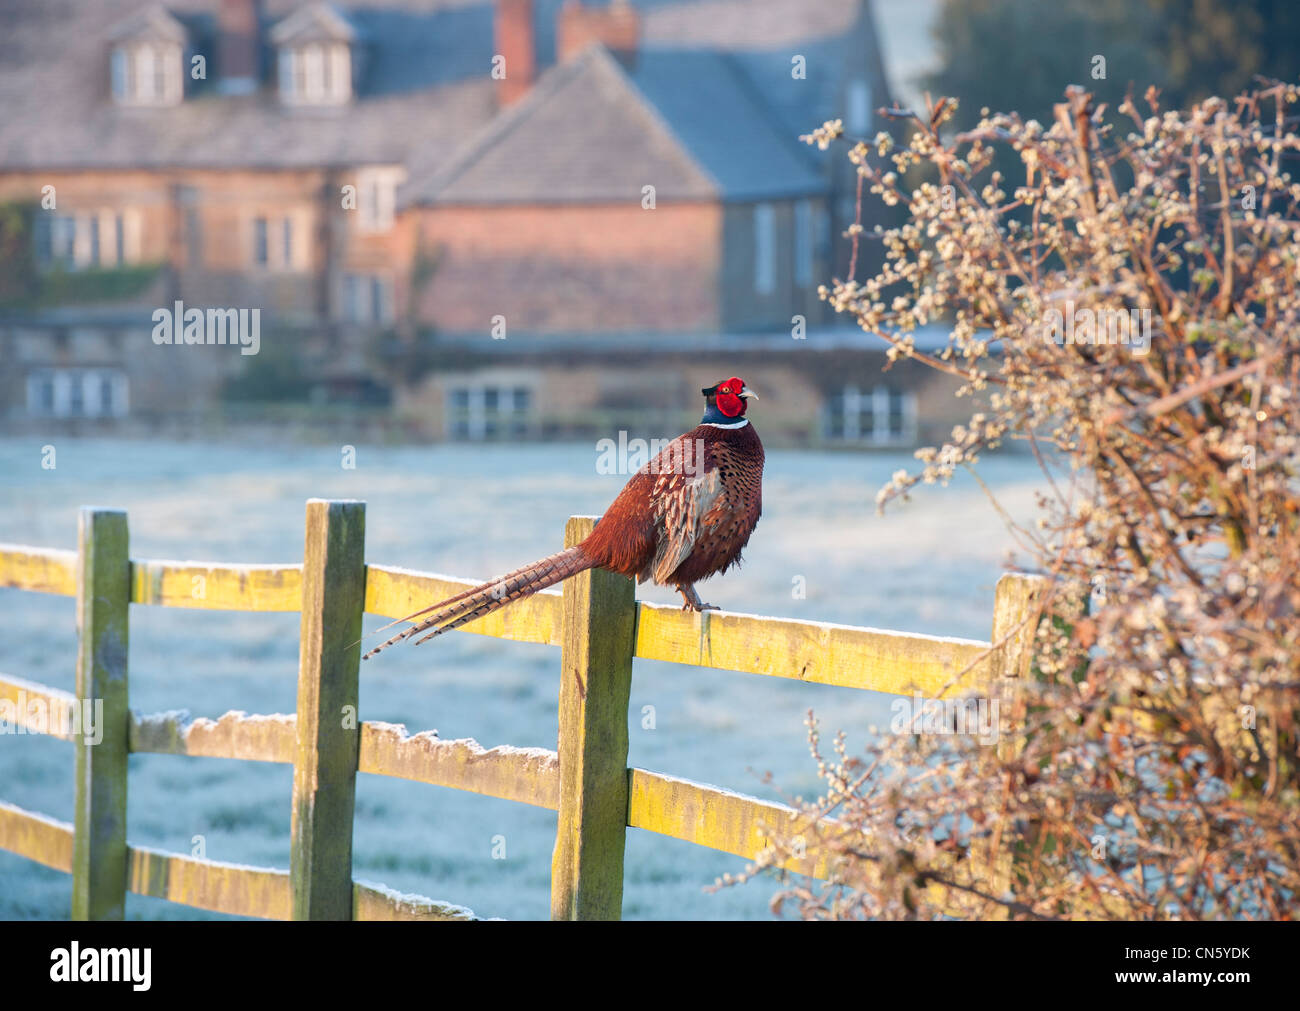 Winter Pheasant Uk Stock Photos & Winter Pheasant Uk Stock Images ...